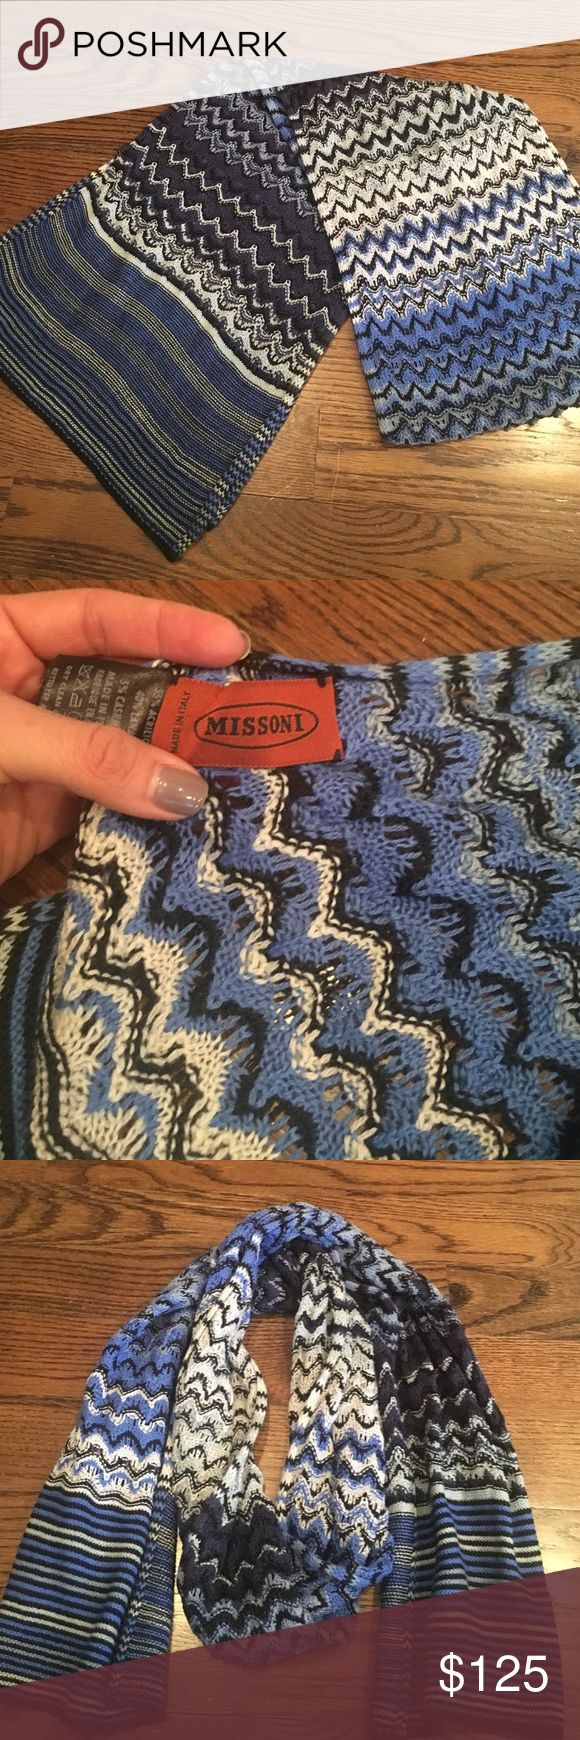 Missoni scarf Beautiful long Missoni scarf. Excellent condition. Worn only a few times. Missoni Accessories Scarves & Wraps